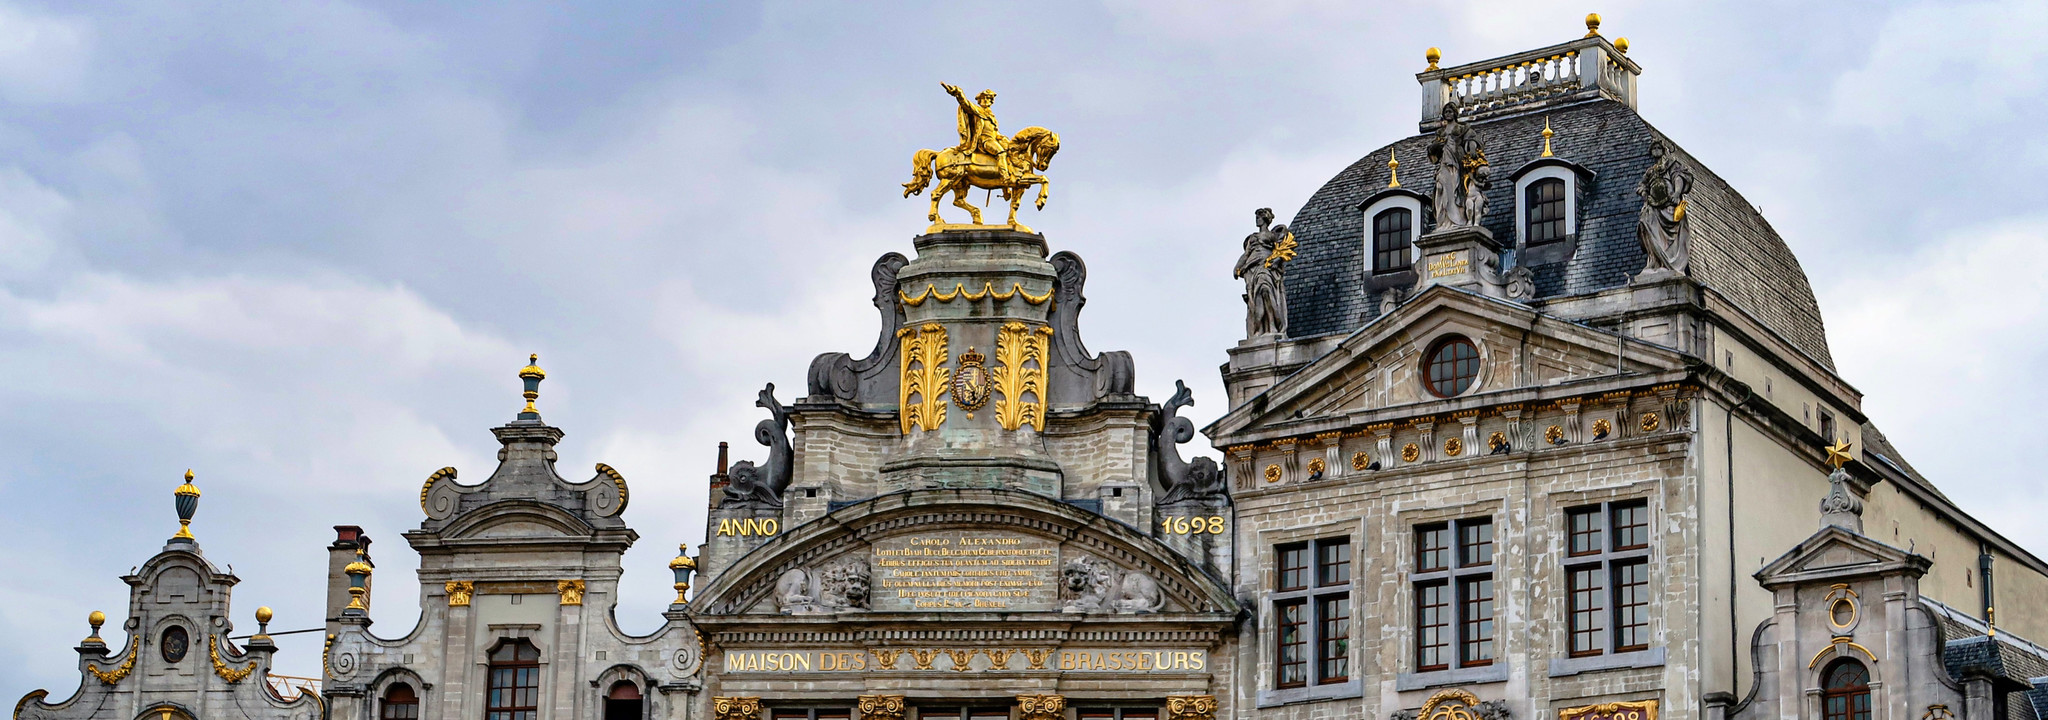 Where can you find het best perfumeries in Brussels? Join us for a scented city walk